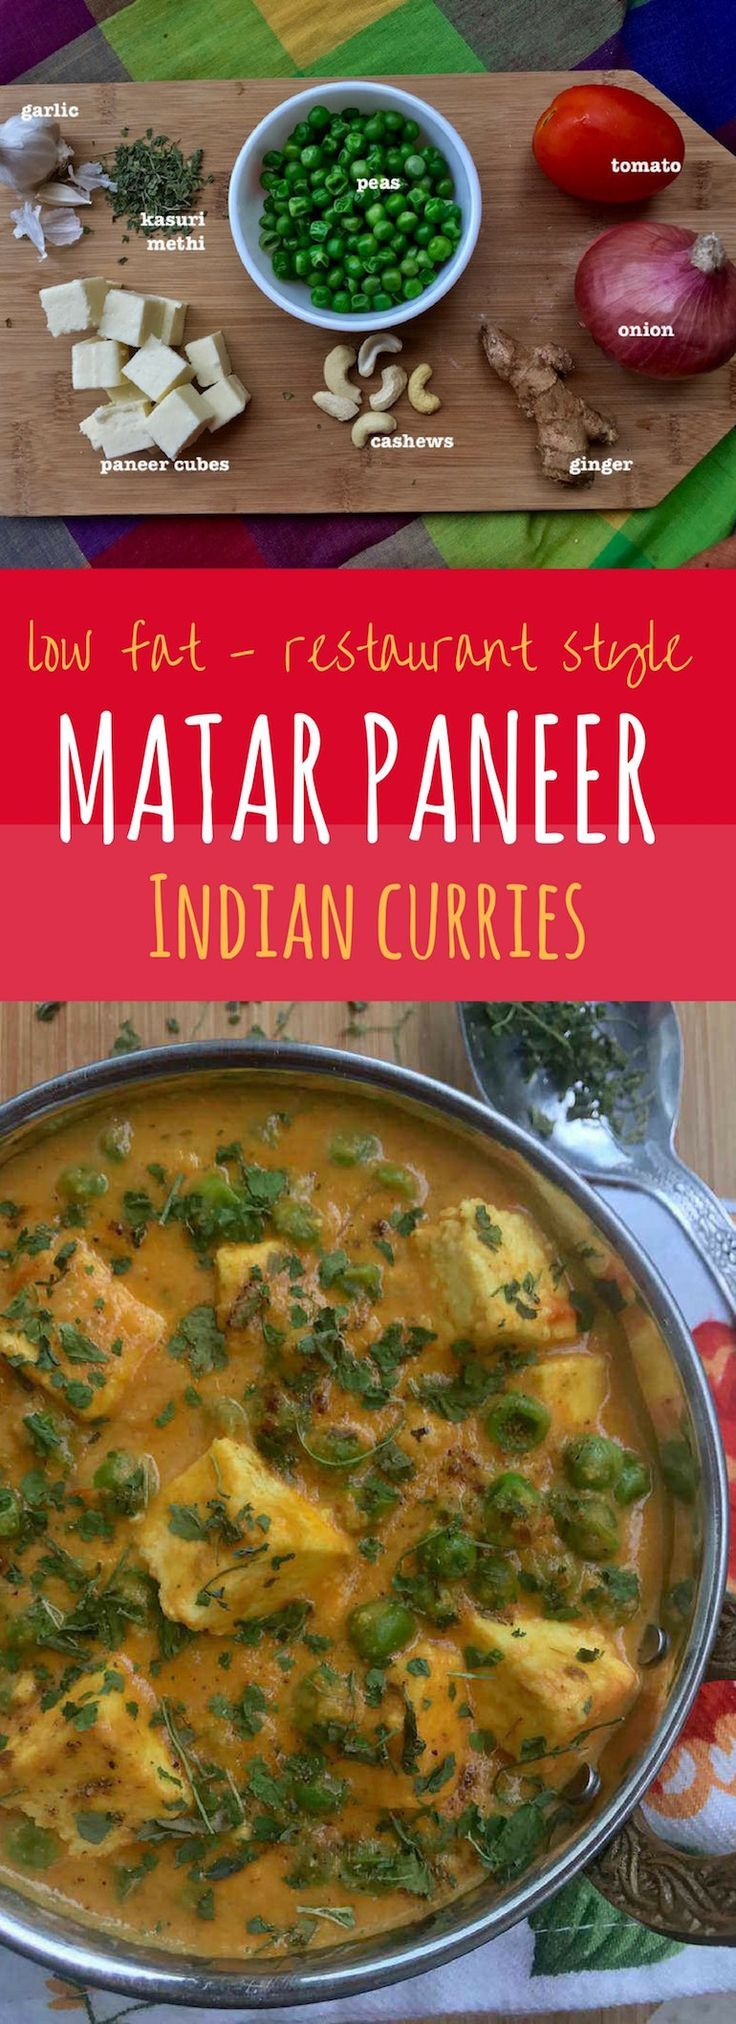 Restaurant style Paneer Recipes - Matar Paneer - Indian style peas and cottage cheese curry made healthier